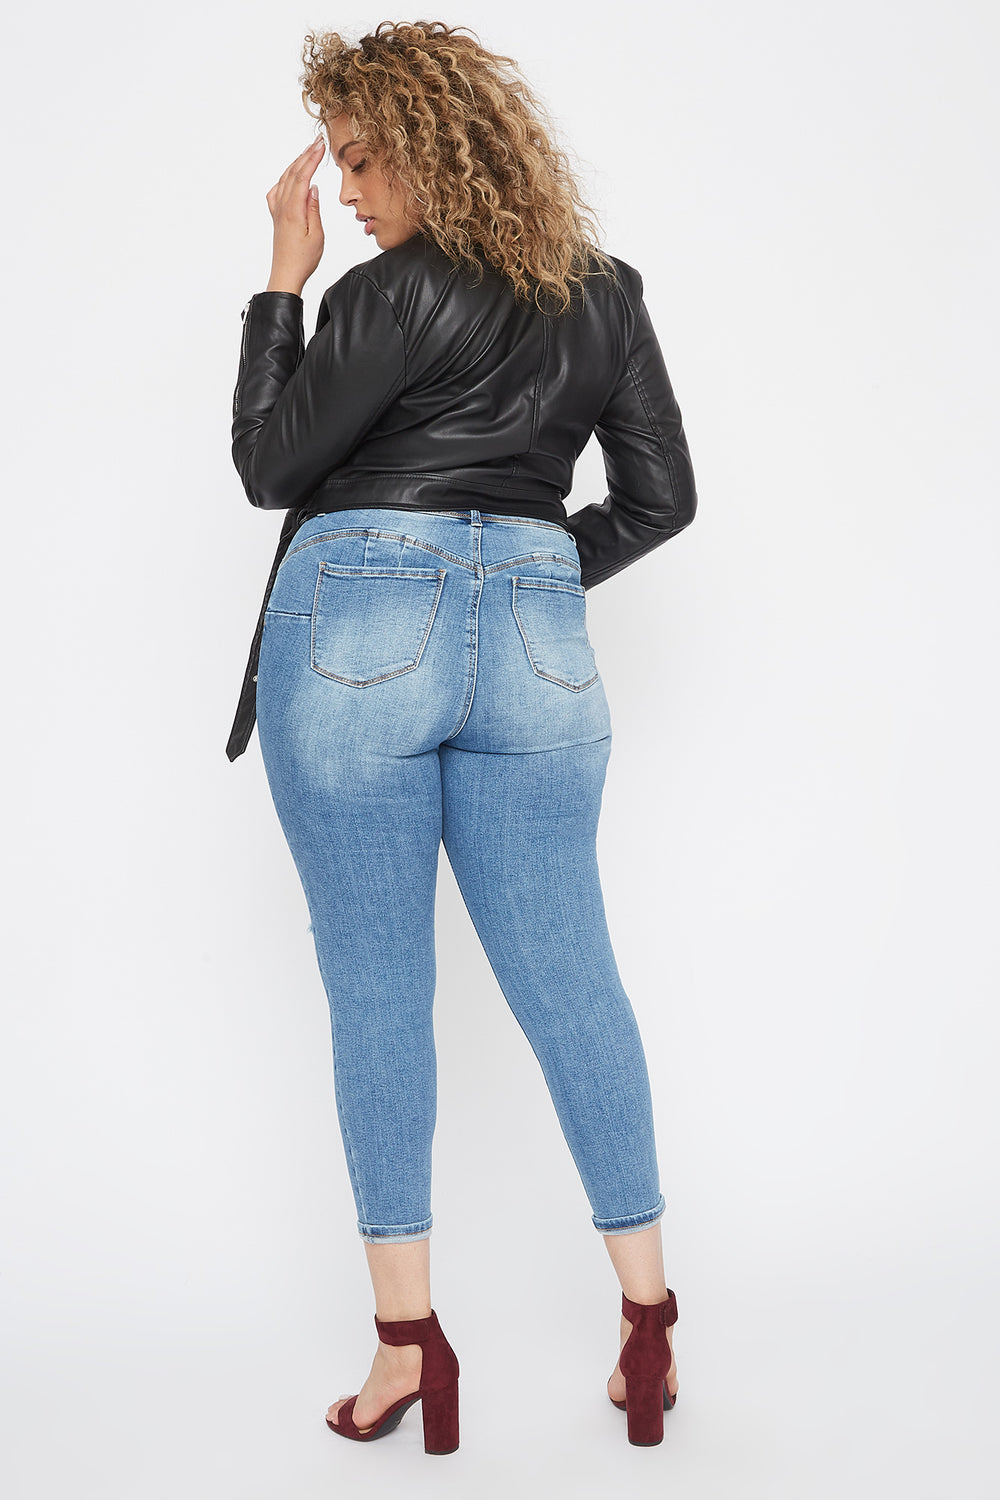 Plus Size Butt, I Love You High-Rise Push-Up Distressed Cuffed Skinny Jean Sky Blue